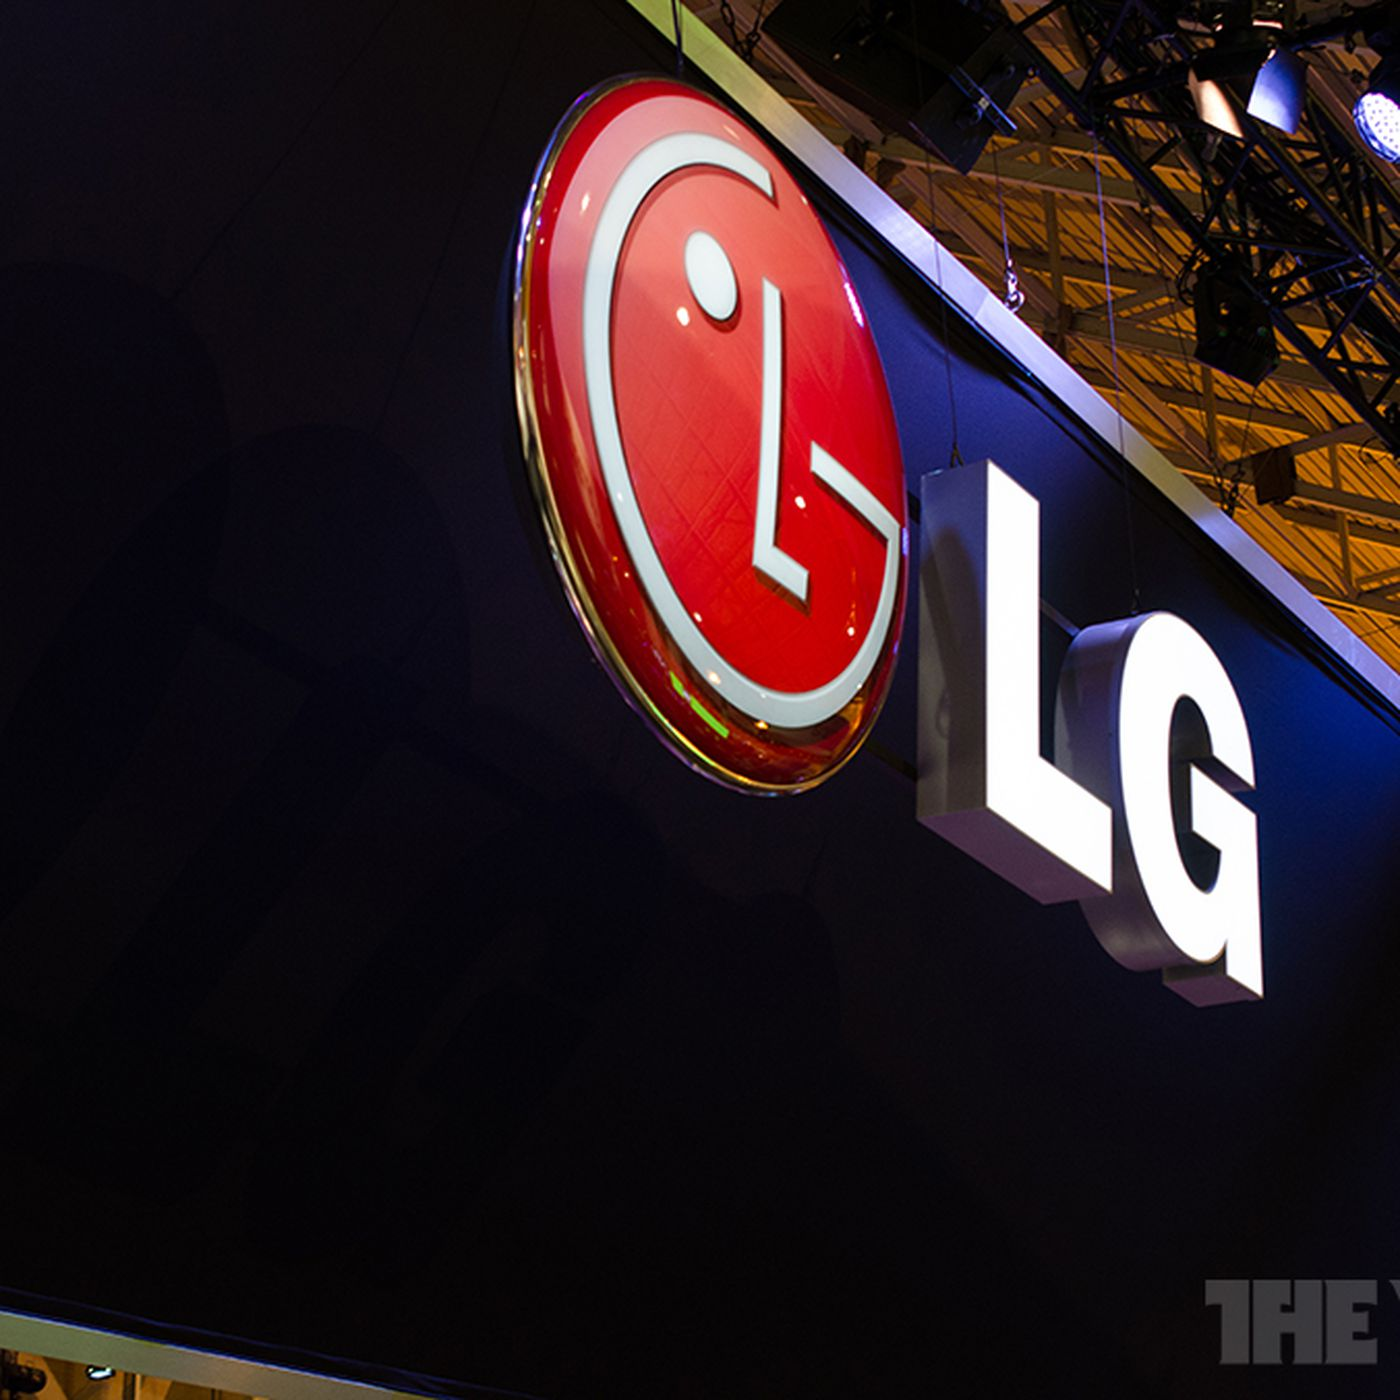 Lg Agrees To Pay 380 Million To Settle Lcd Price Fixing Case The